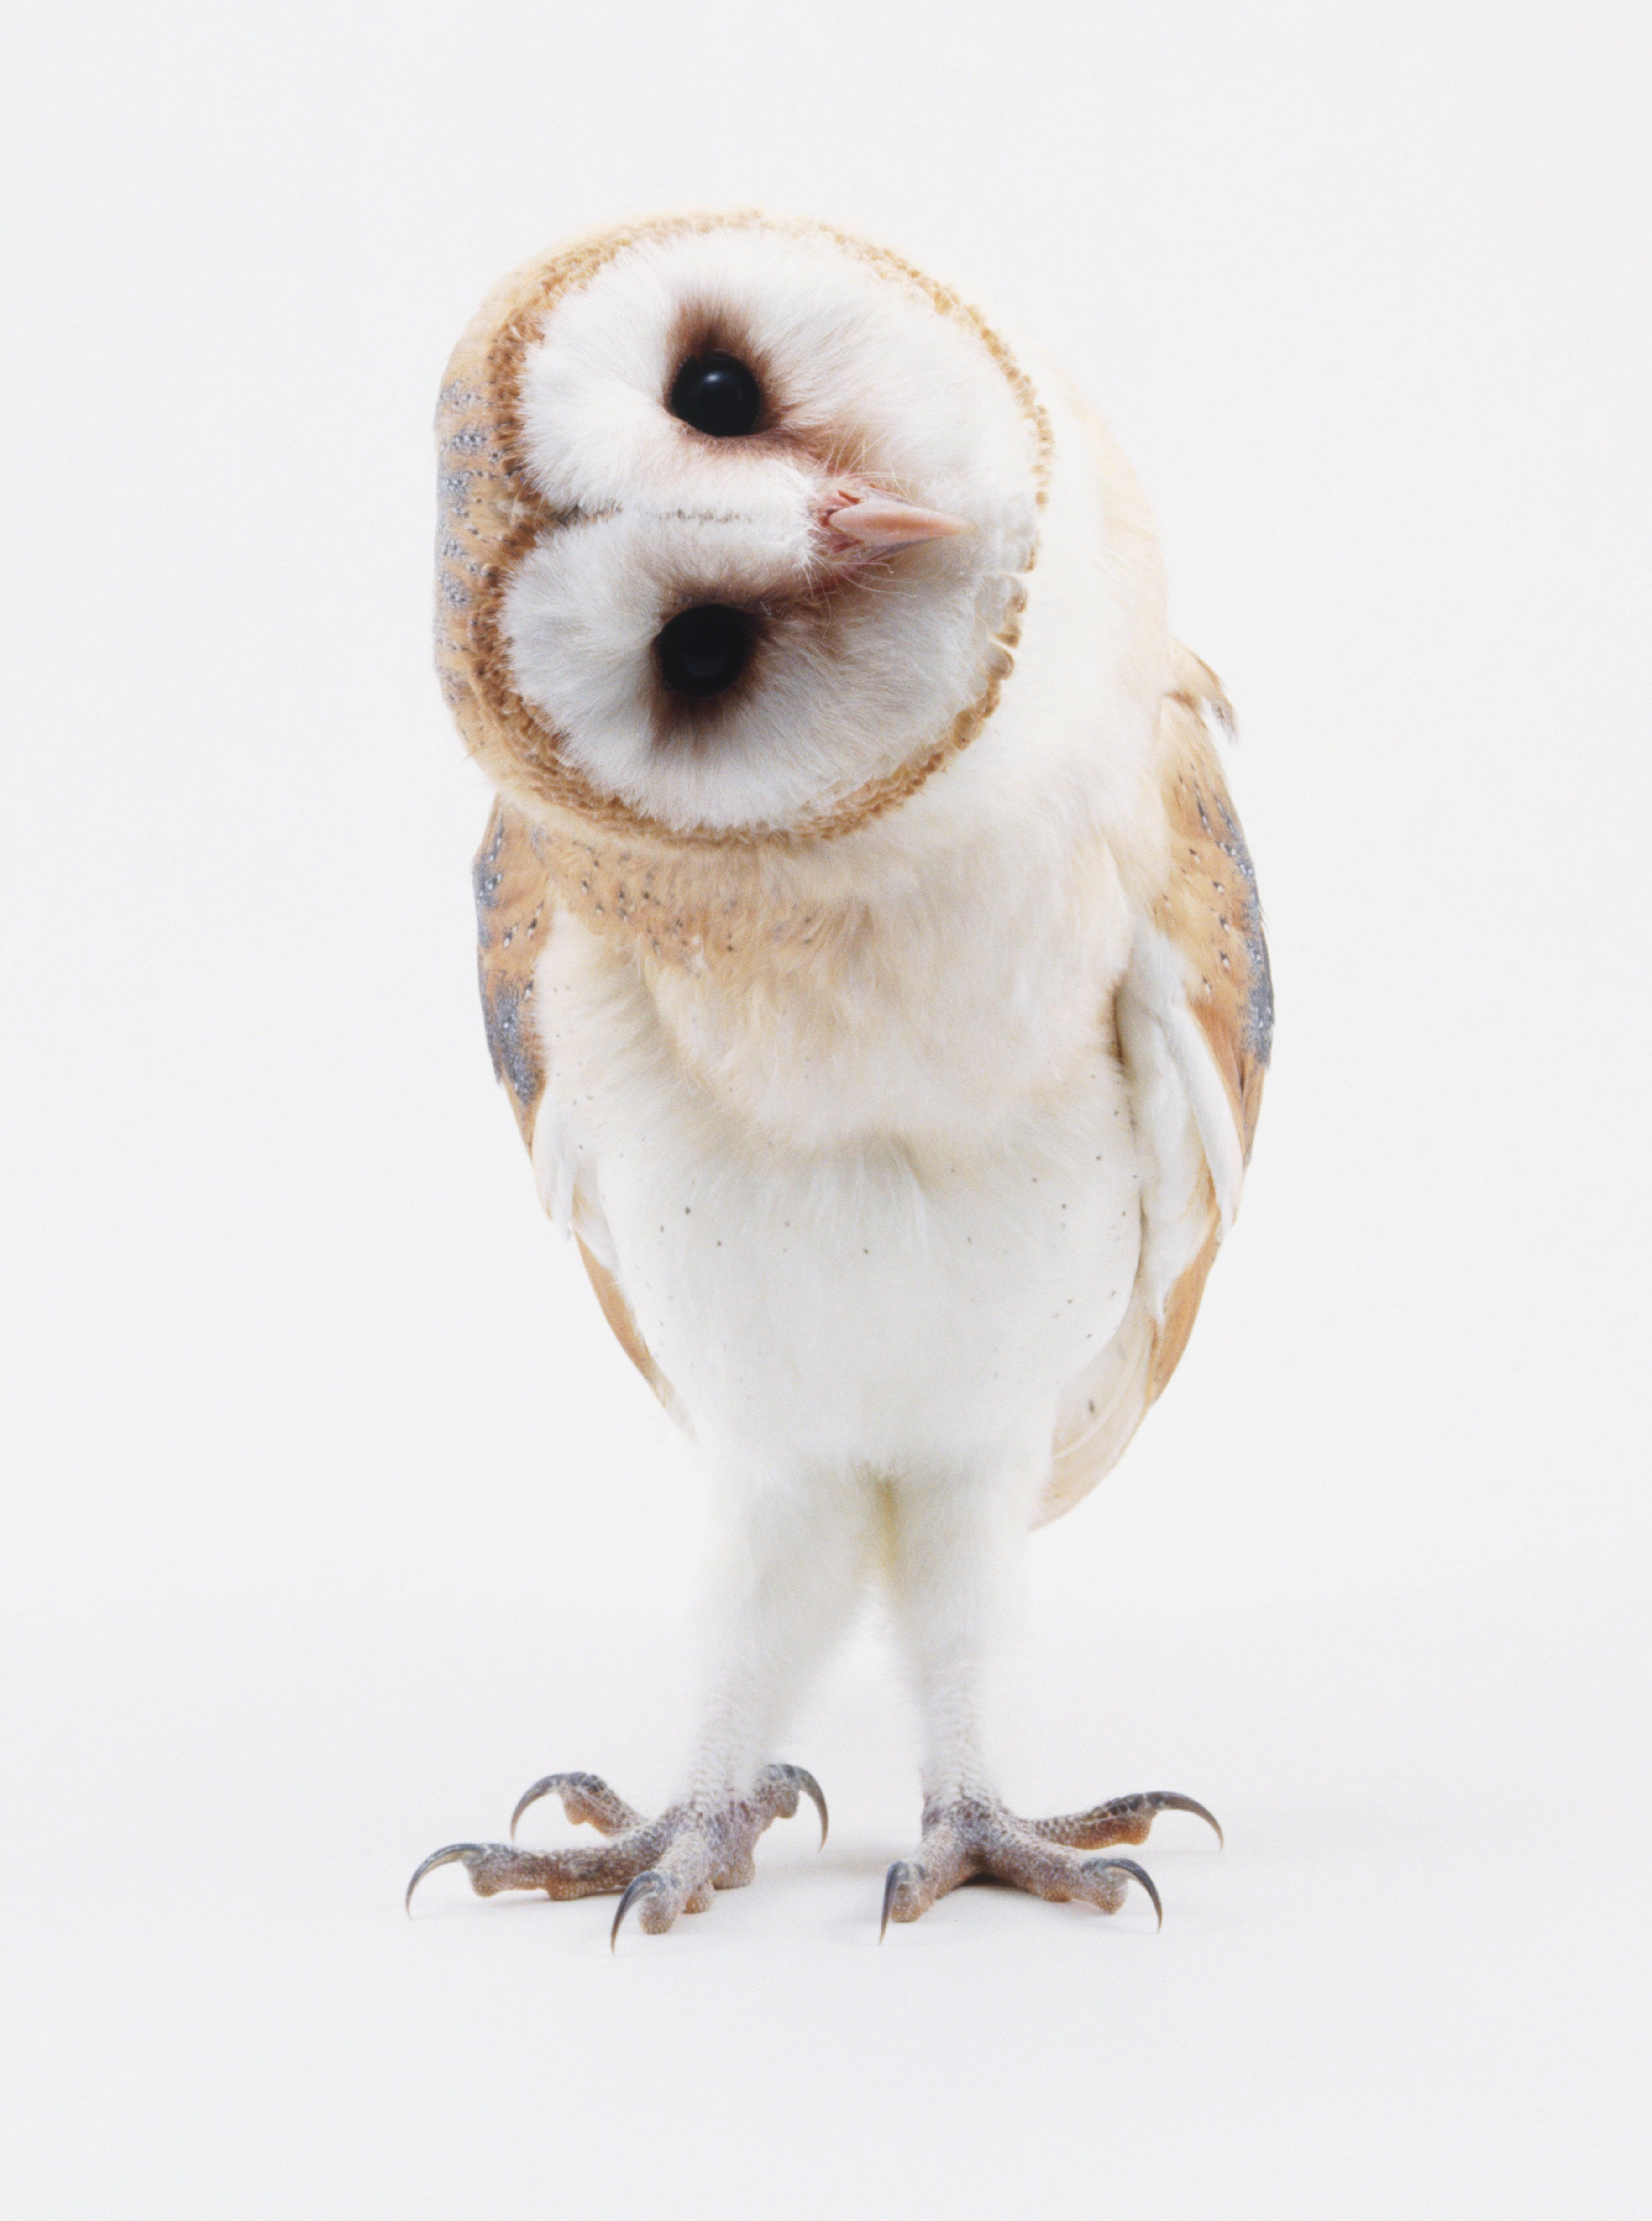 Young Barn Owl (Tyto alba) with head turned